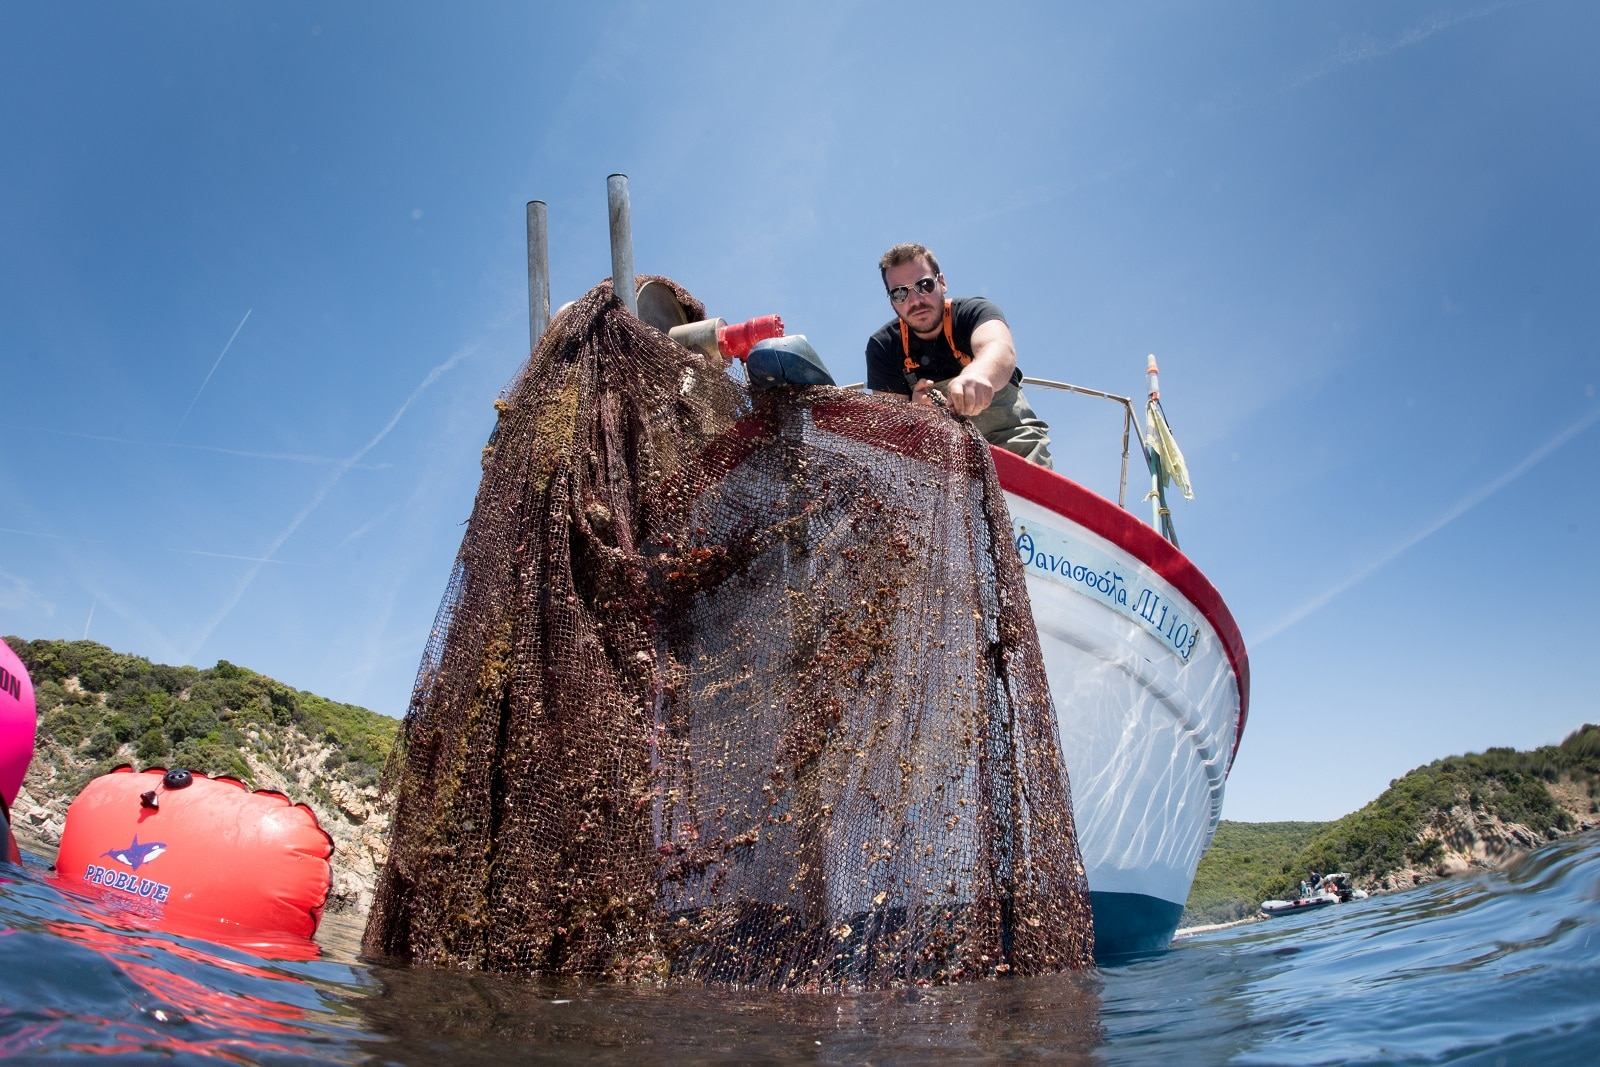 A man pulls a ghost fishing net out of the water, in the village of Stratoni near Halkidiki, Greece, May 18, 2019. Cor Kuyvenhoven/Ghost Fishing Greece/Handout via REUTERS